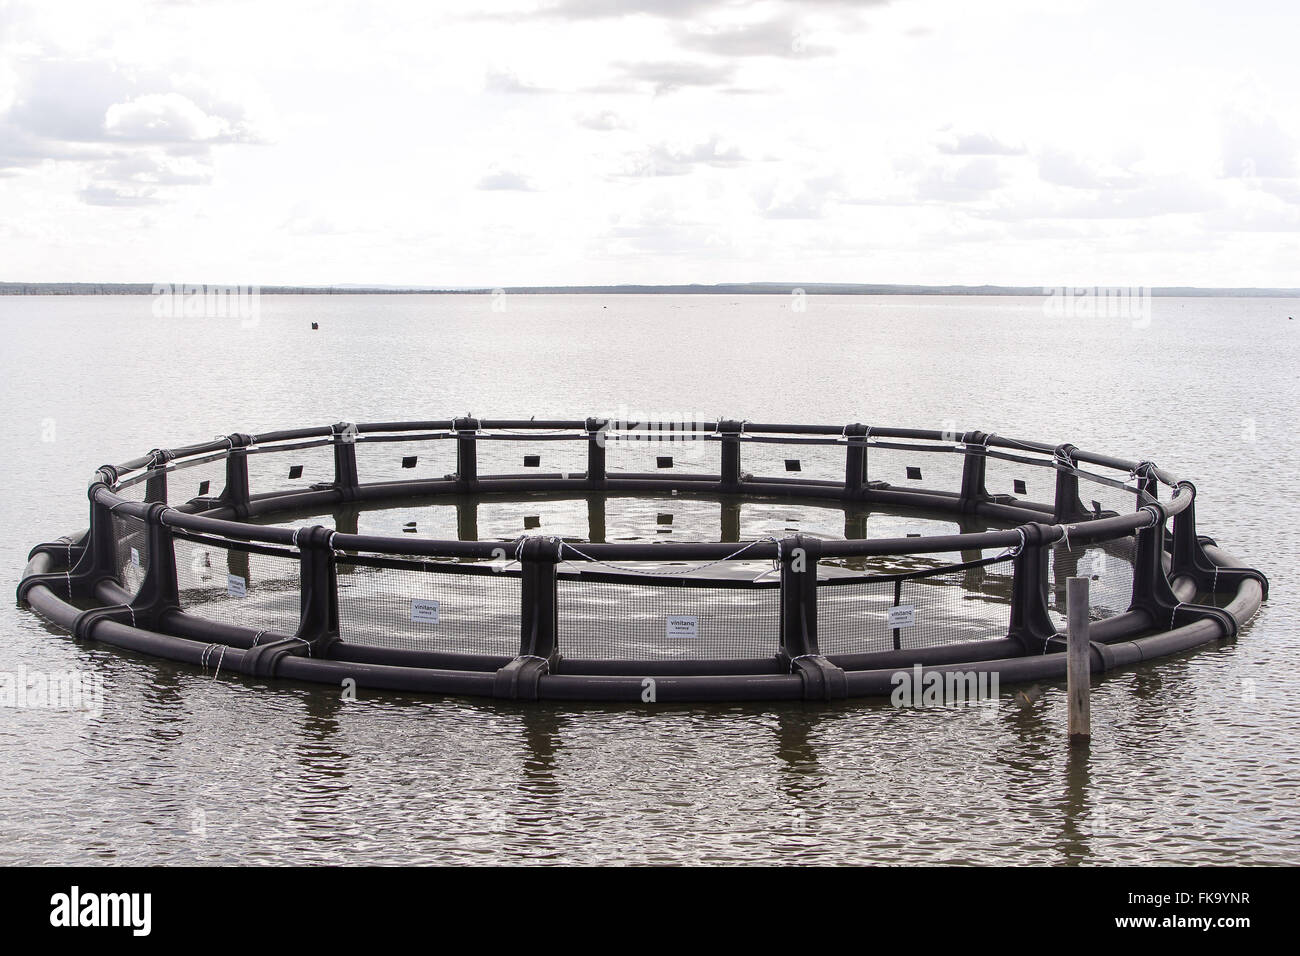 Fish Farming Stock Photos & Fish Farming Stock Images - Alamy